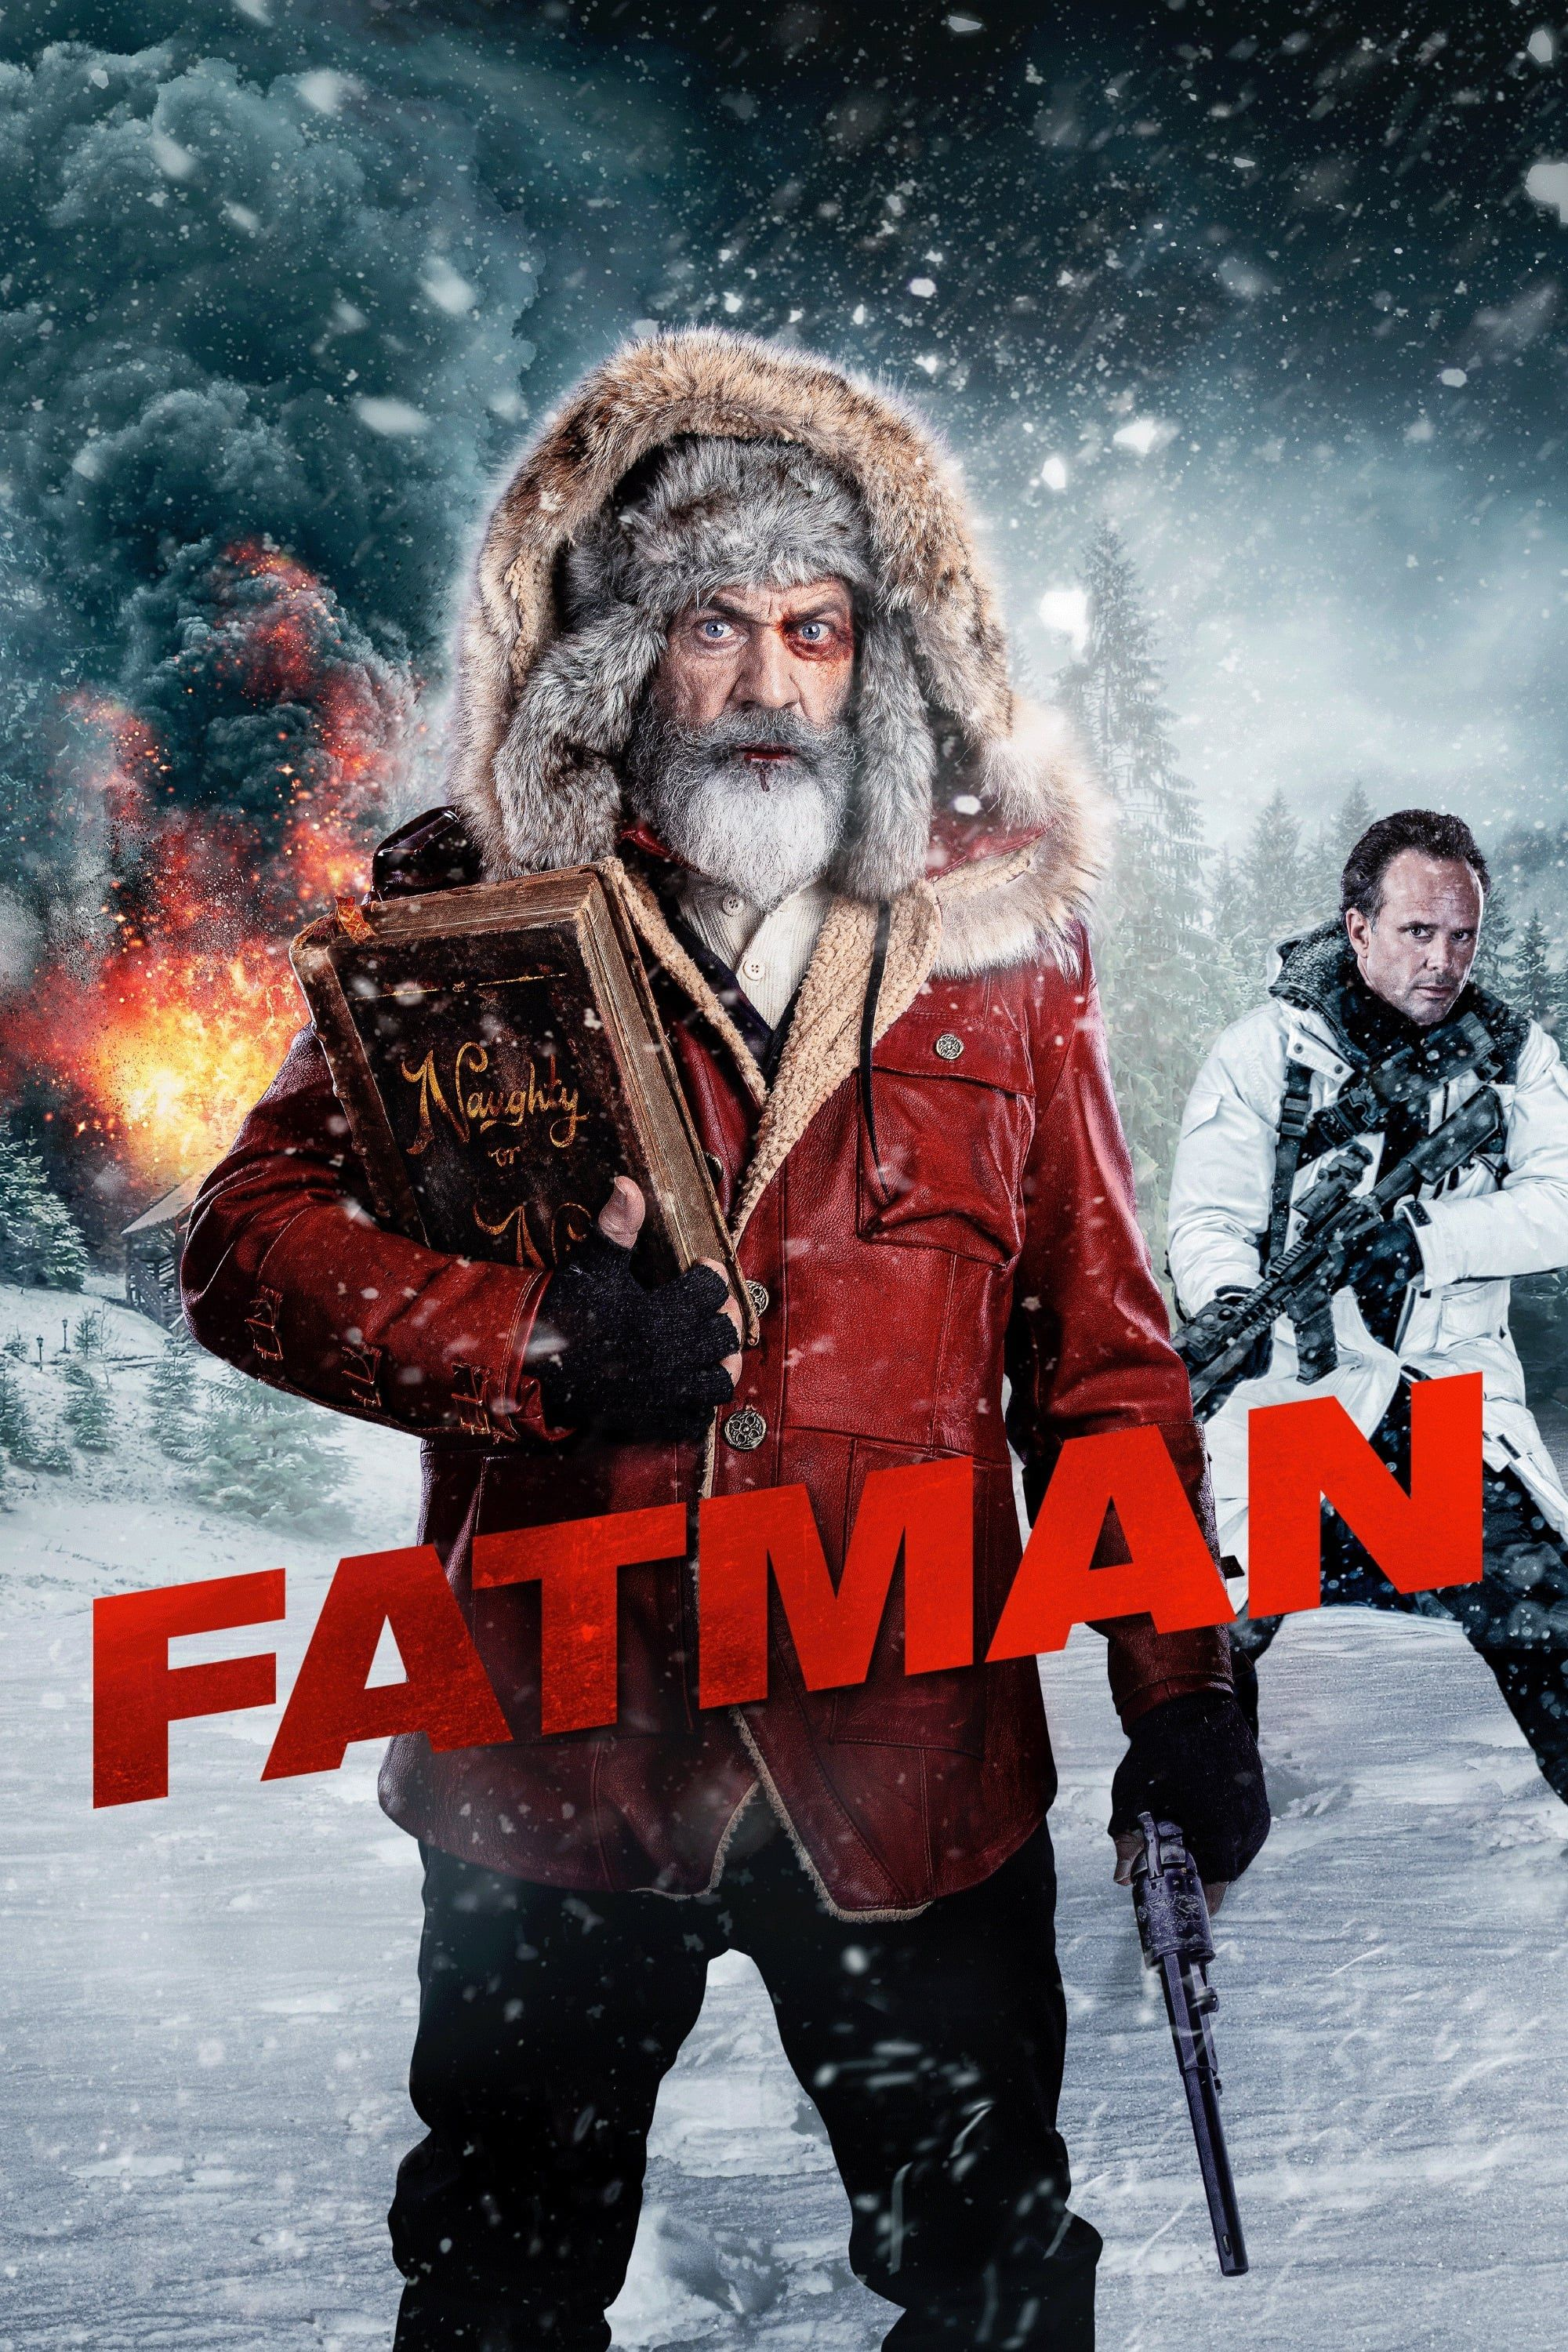 Voir Film Fatman - Film (2020) streaming VF gratuit complet